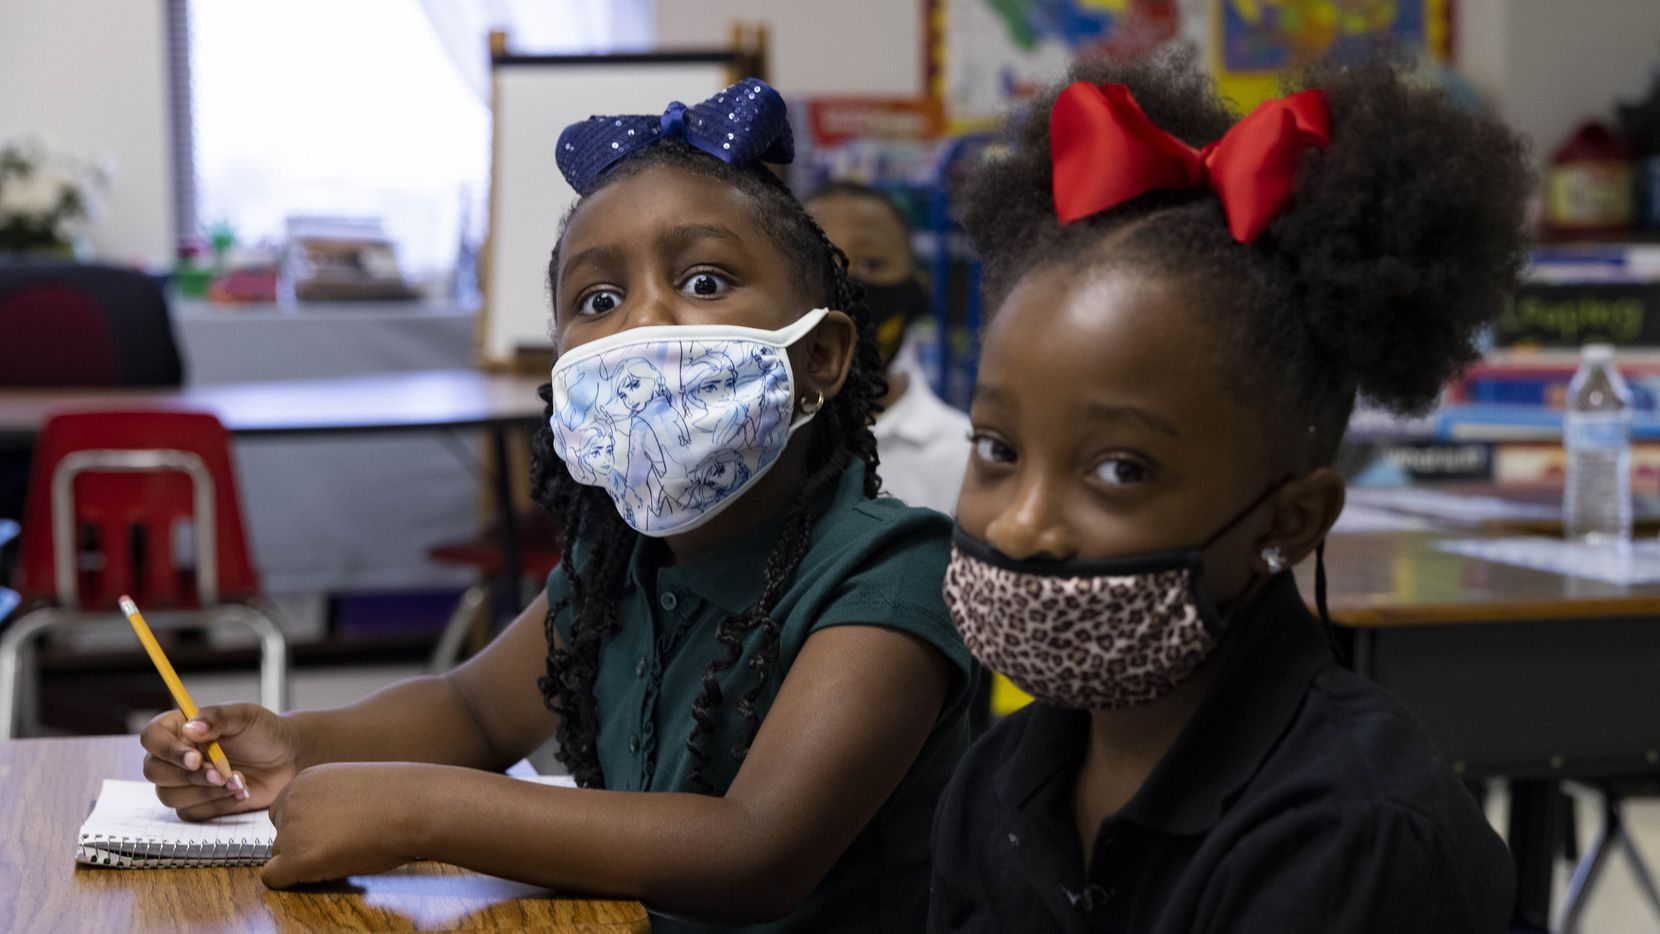 The Texas Education Agency won't issue updated health guidance related to masks as school districts face off with state officials over the governor's mask mandate ban.